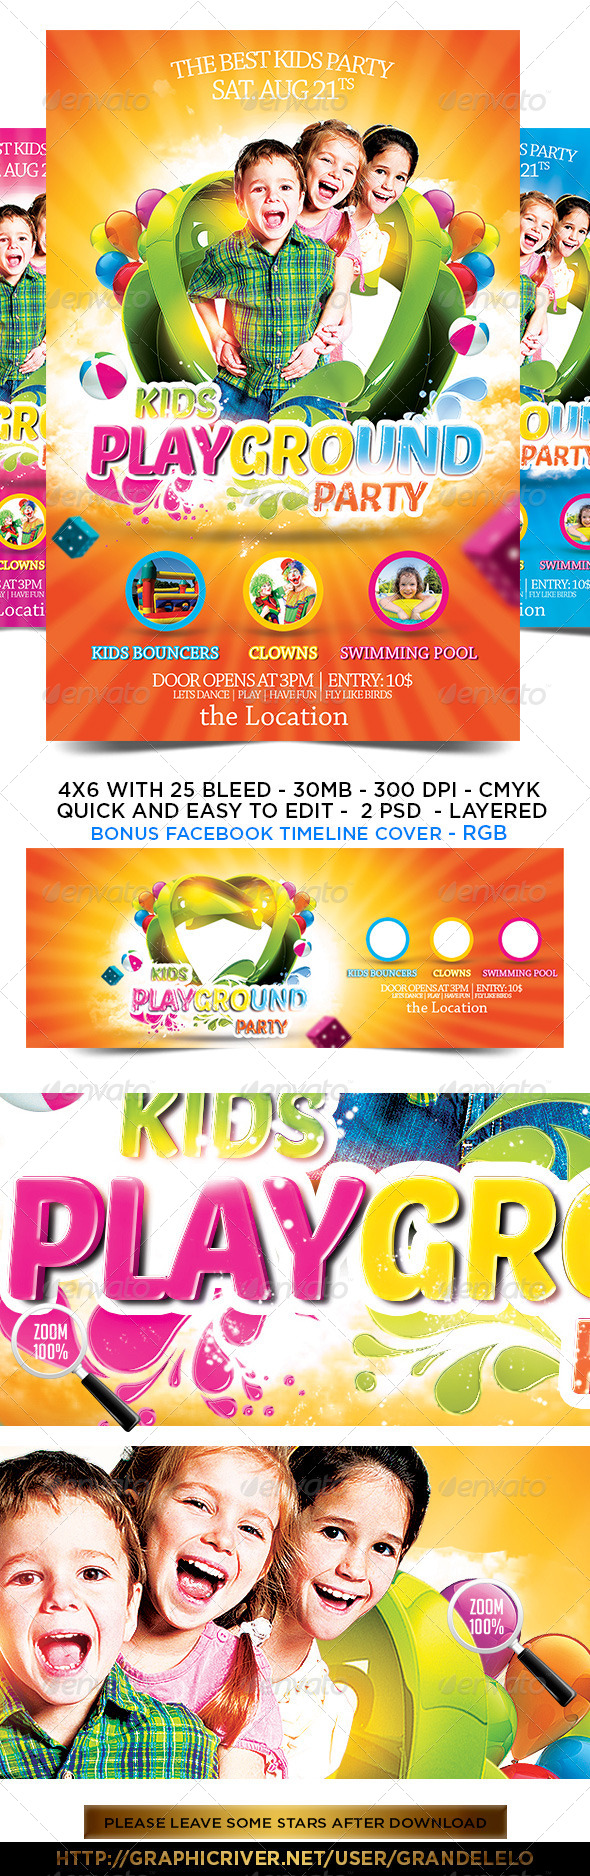 GraphicRiver Kids Party Flyer Template 2.0 5149912